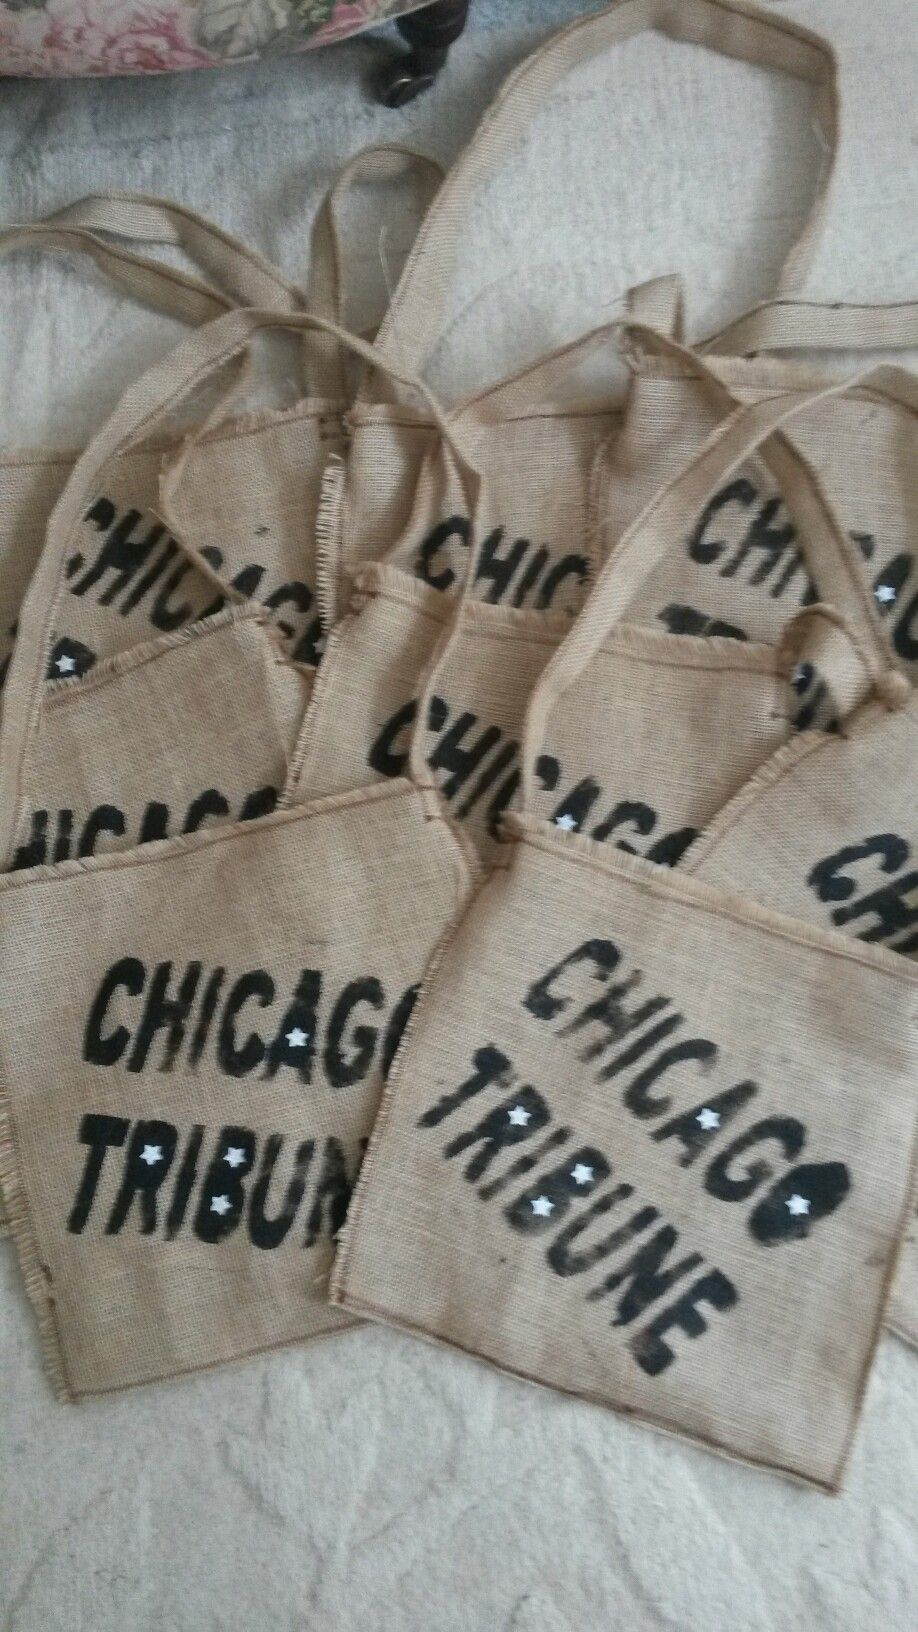 Hessian bags printed for showtime 2016.